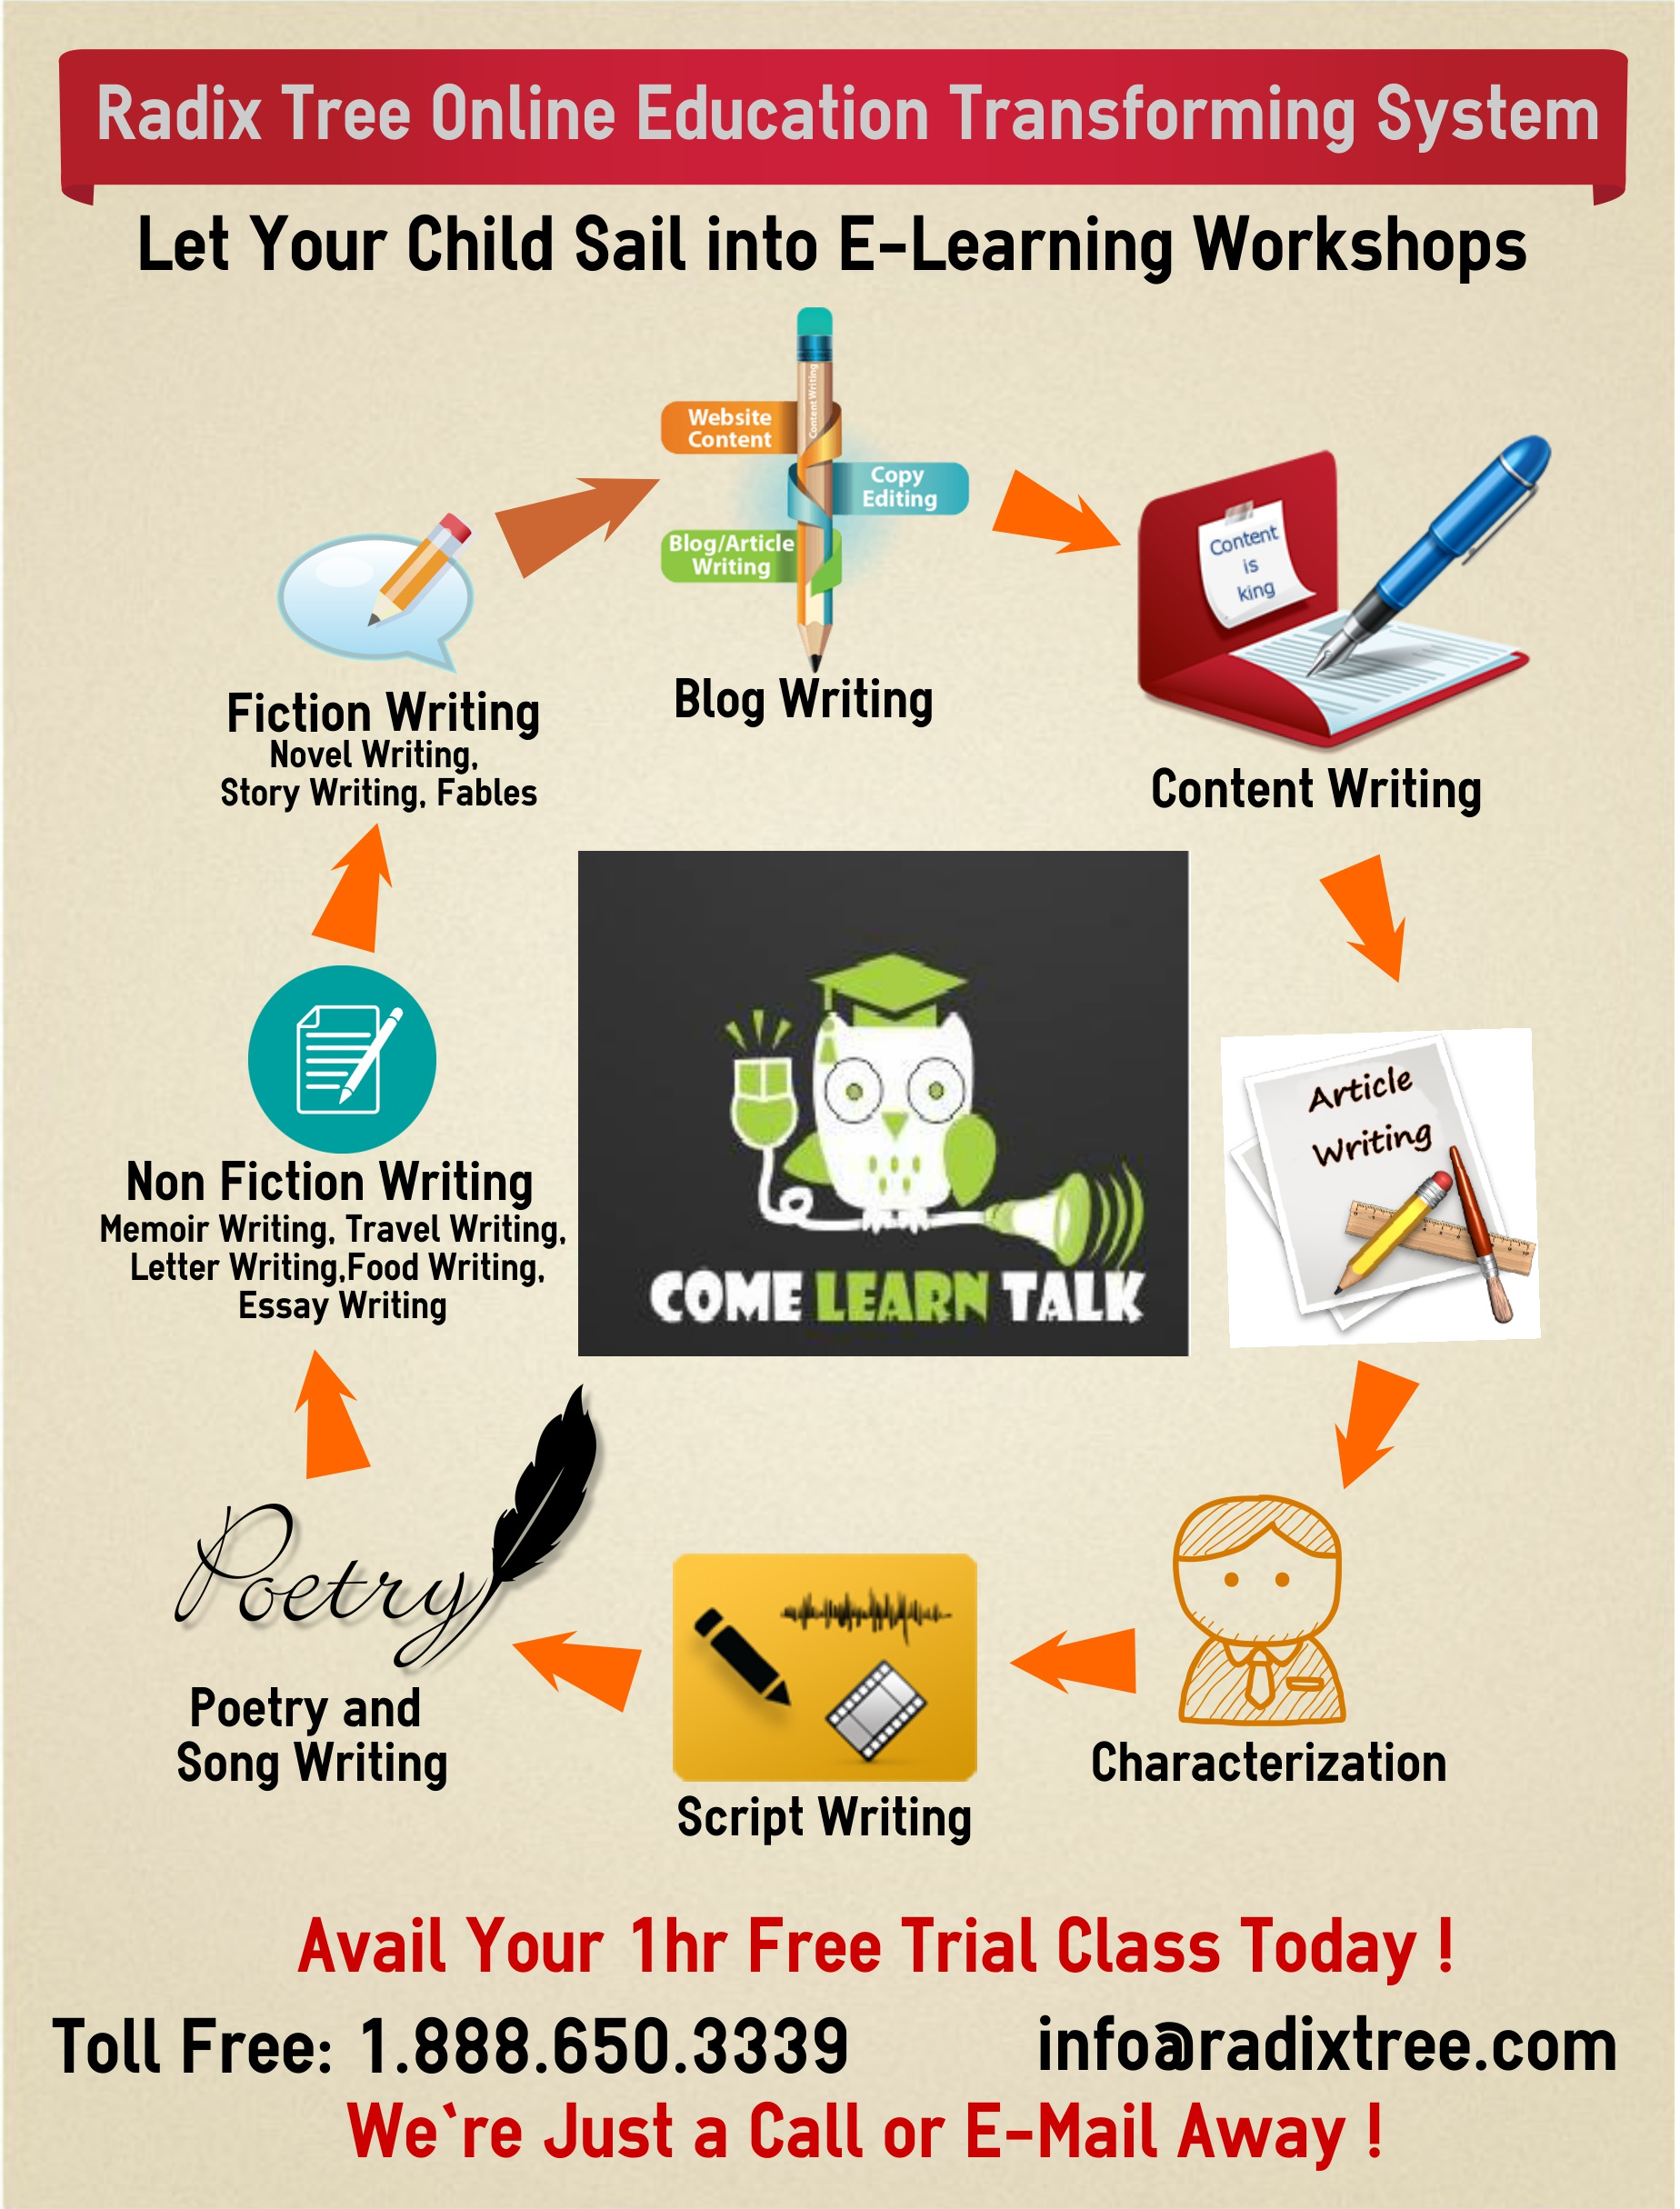 Creative writing online degrees